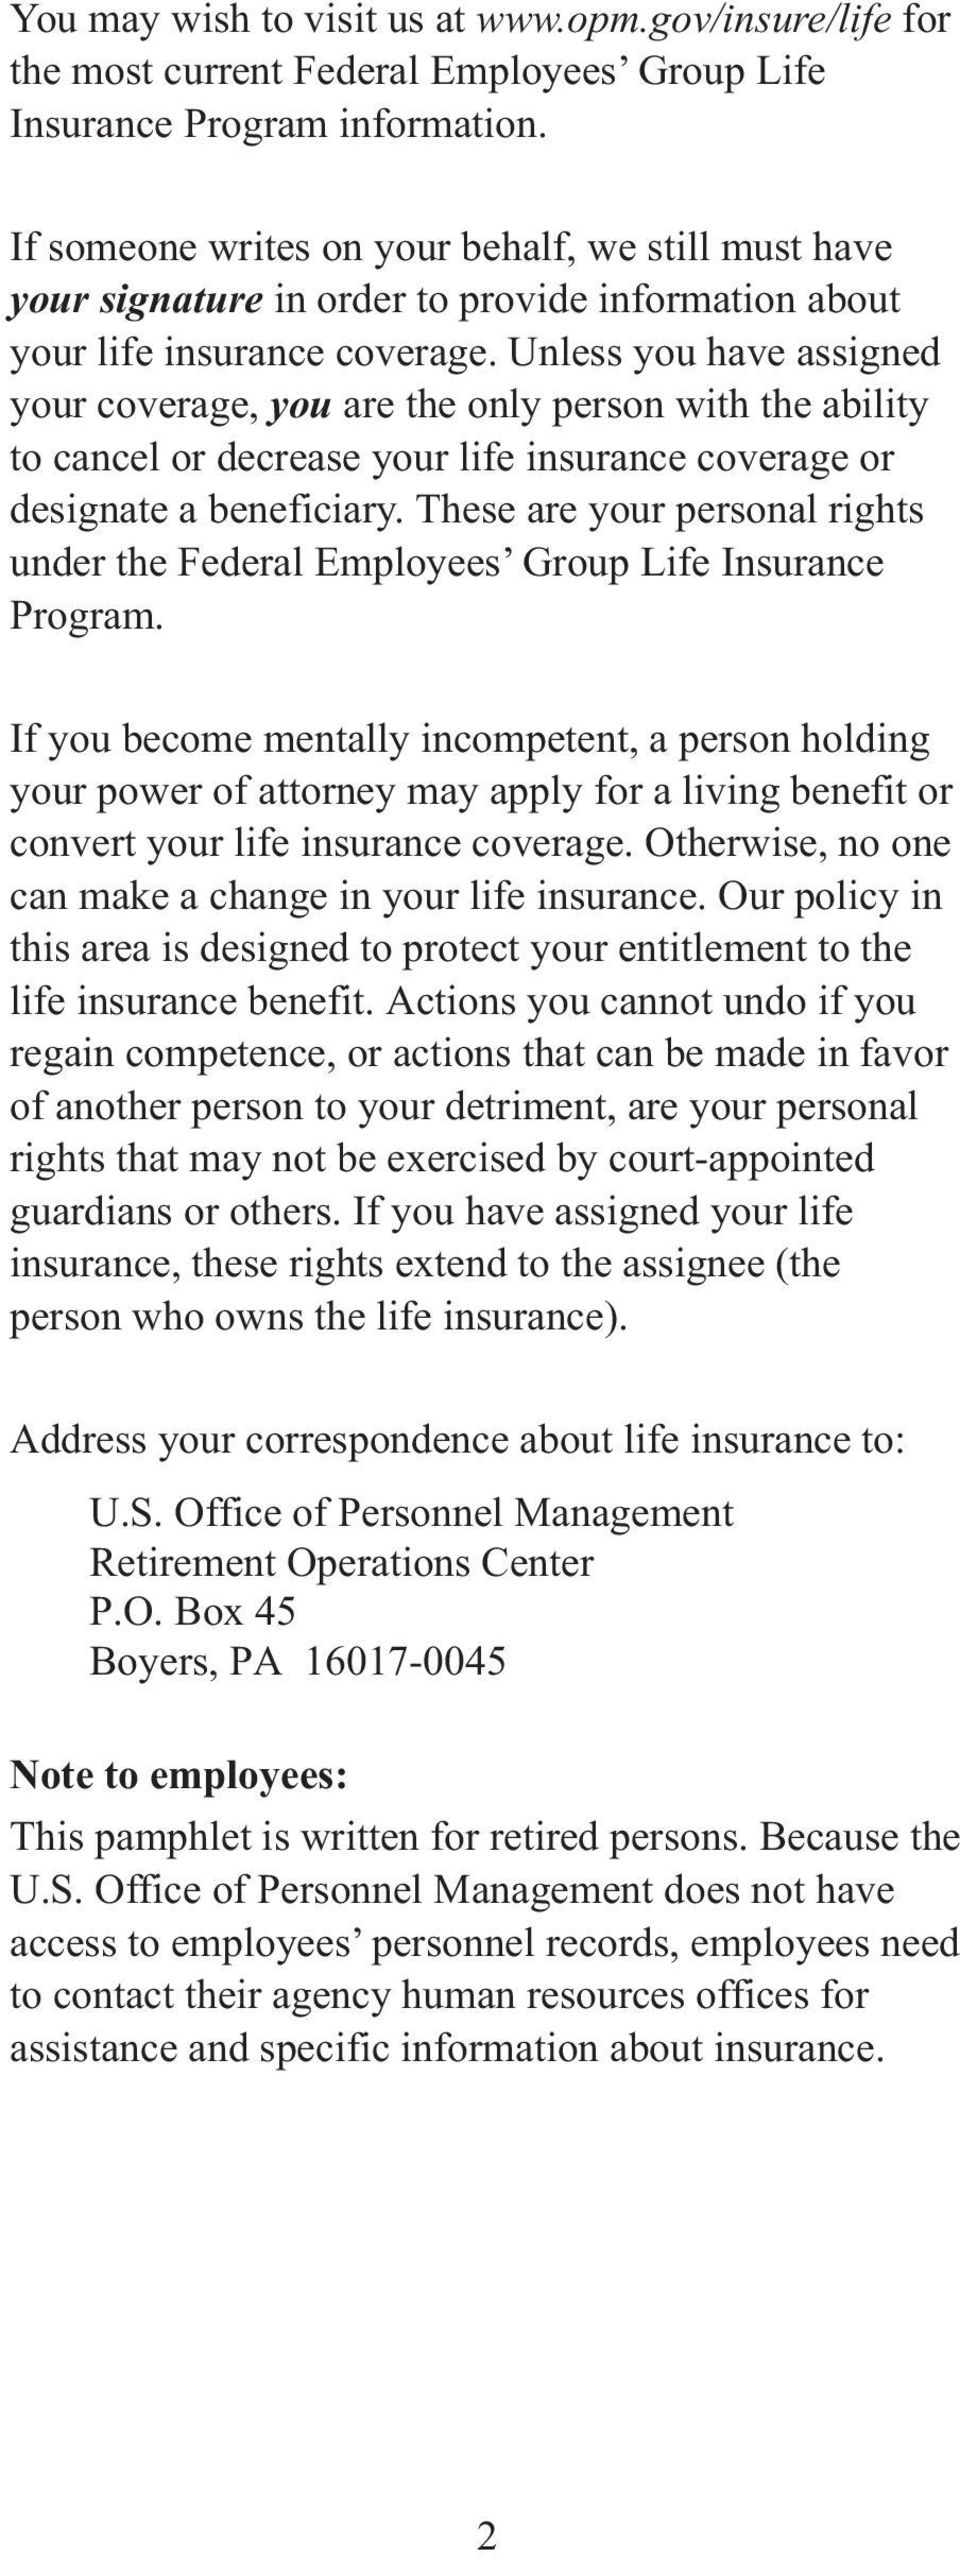 Unless you have assigned your coverage, you are the only person with the ability to cancel or decrease your life insurance coverage or designate a beneficiary.